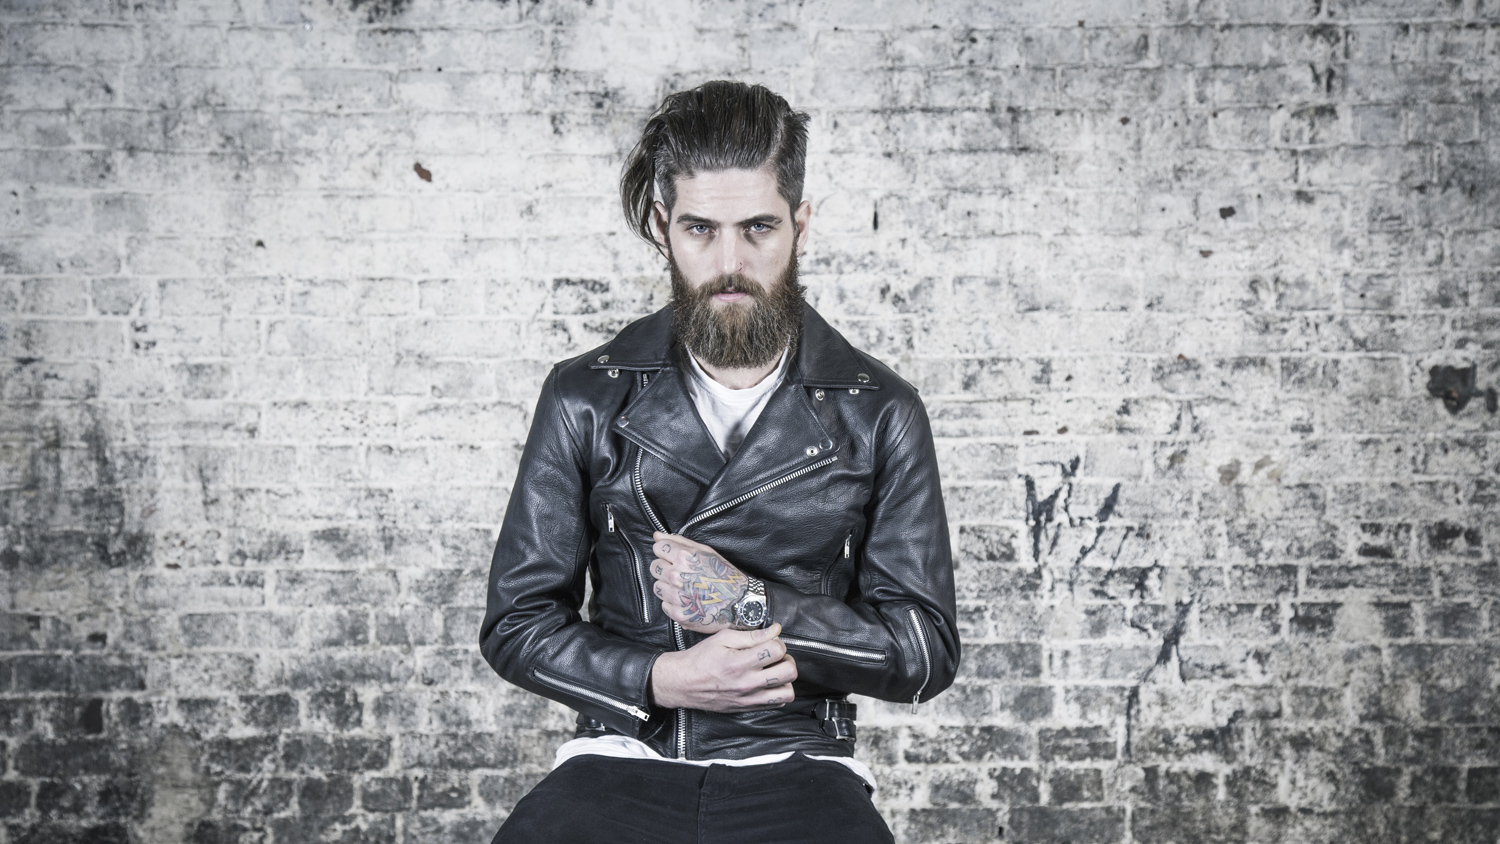 LEATHER BIKER JACKETS | Men's New & Vintage Leather Jacket & Cafe Racer Style Clothing & Accessories